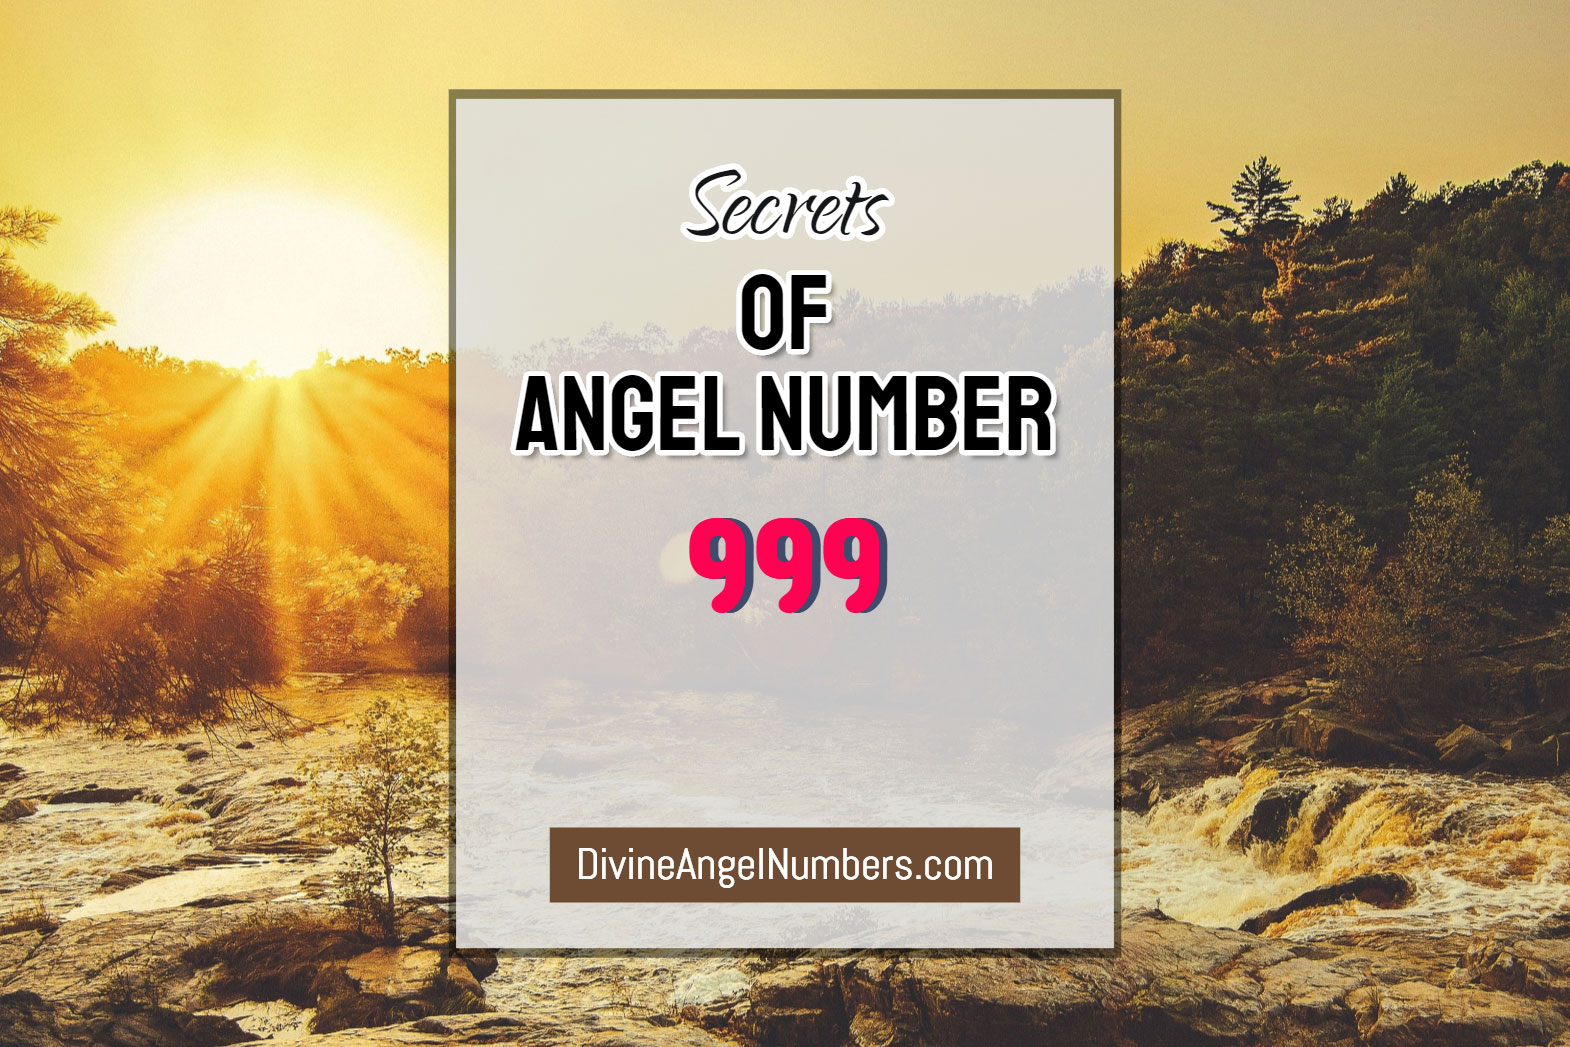 6 Reasons Why You Are Seeing Angel Number 999 - Meaning Of 999